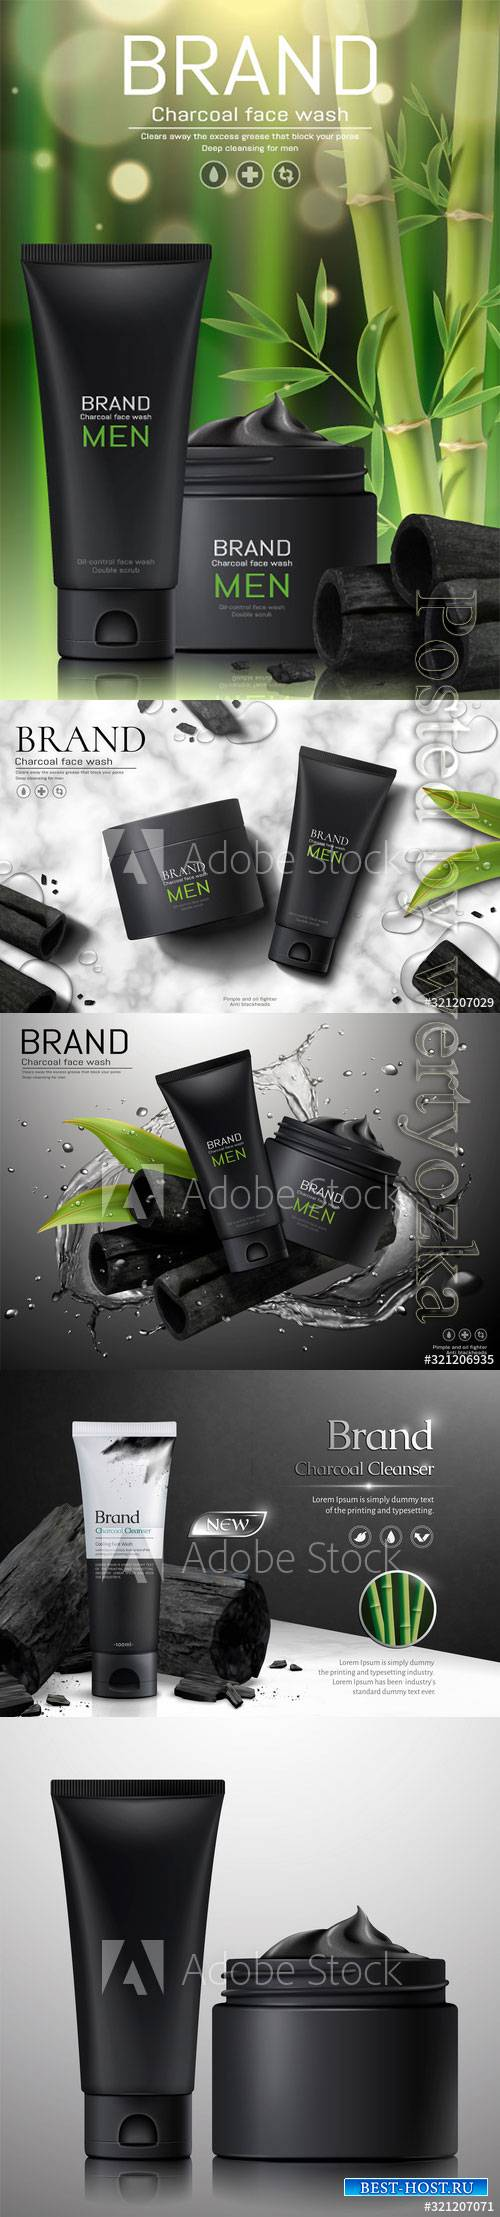 Charcoal men face wash ads